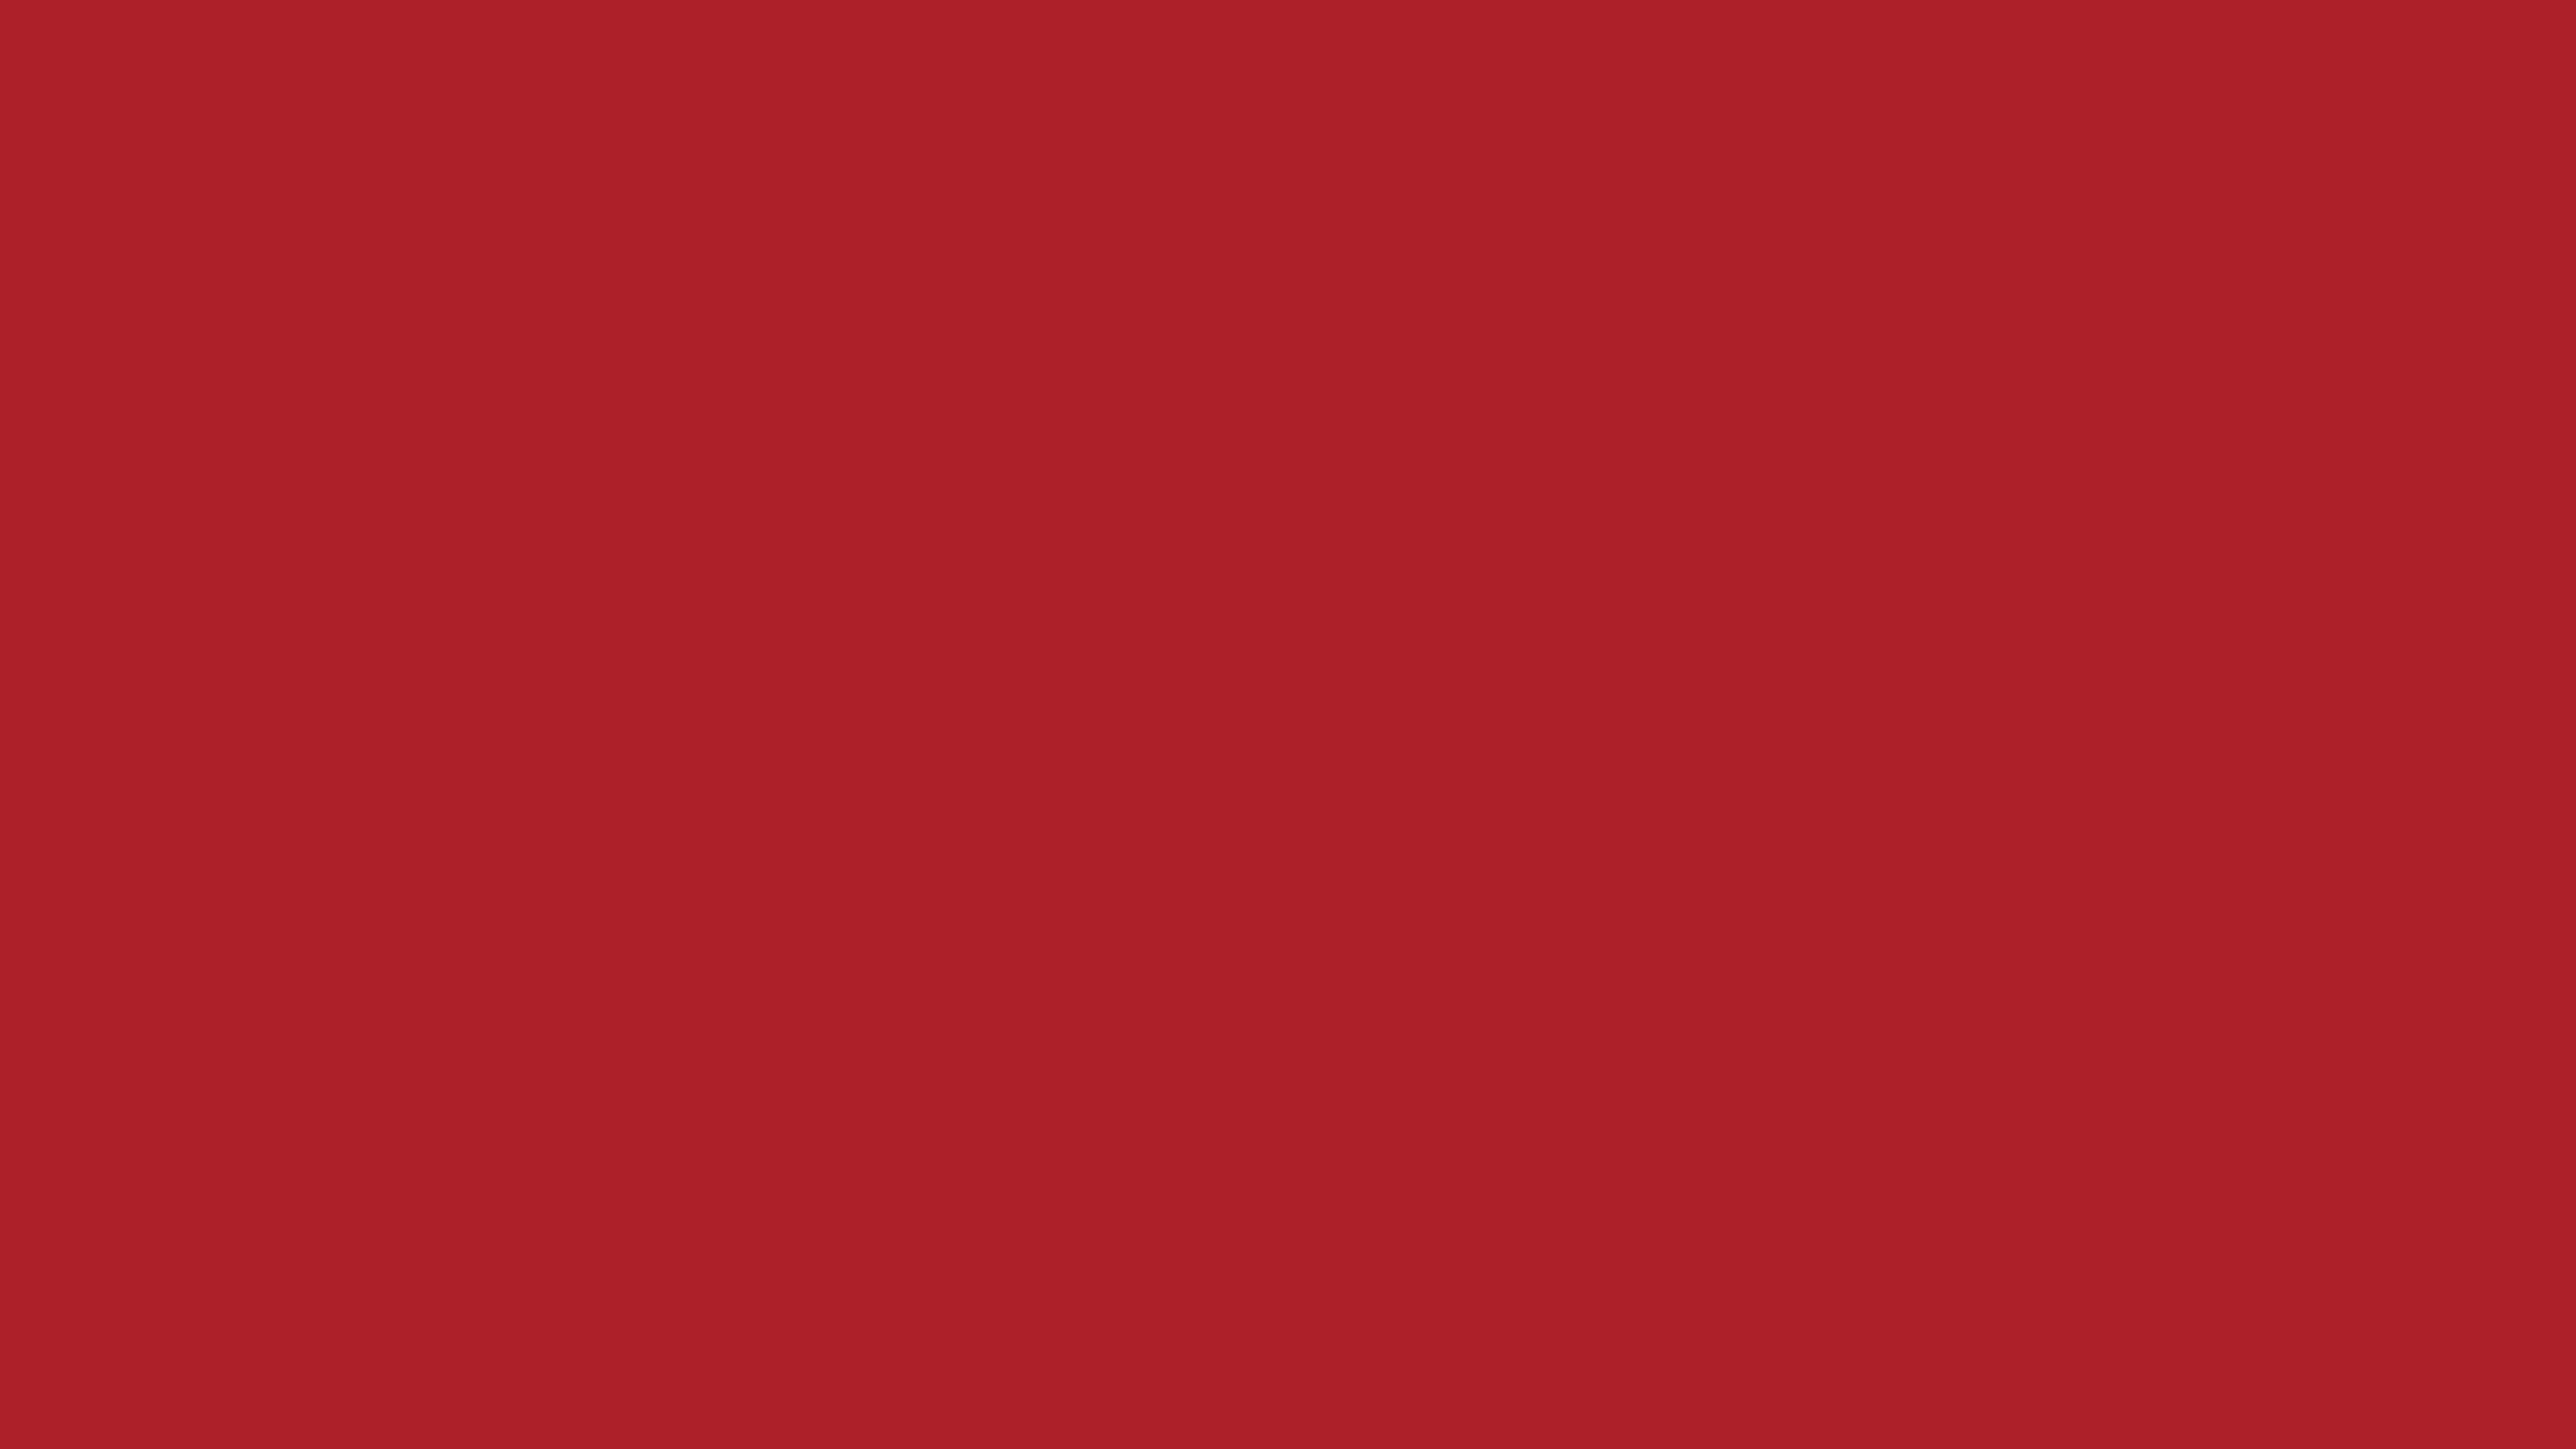 4096x2304 Upsdell Red Solid Color Background